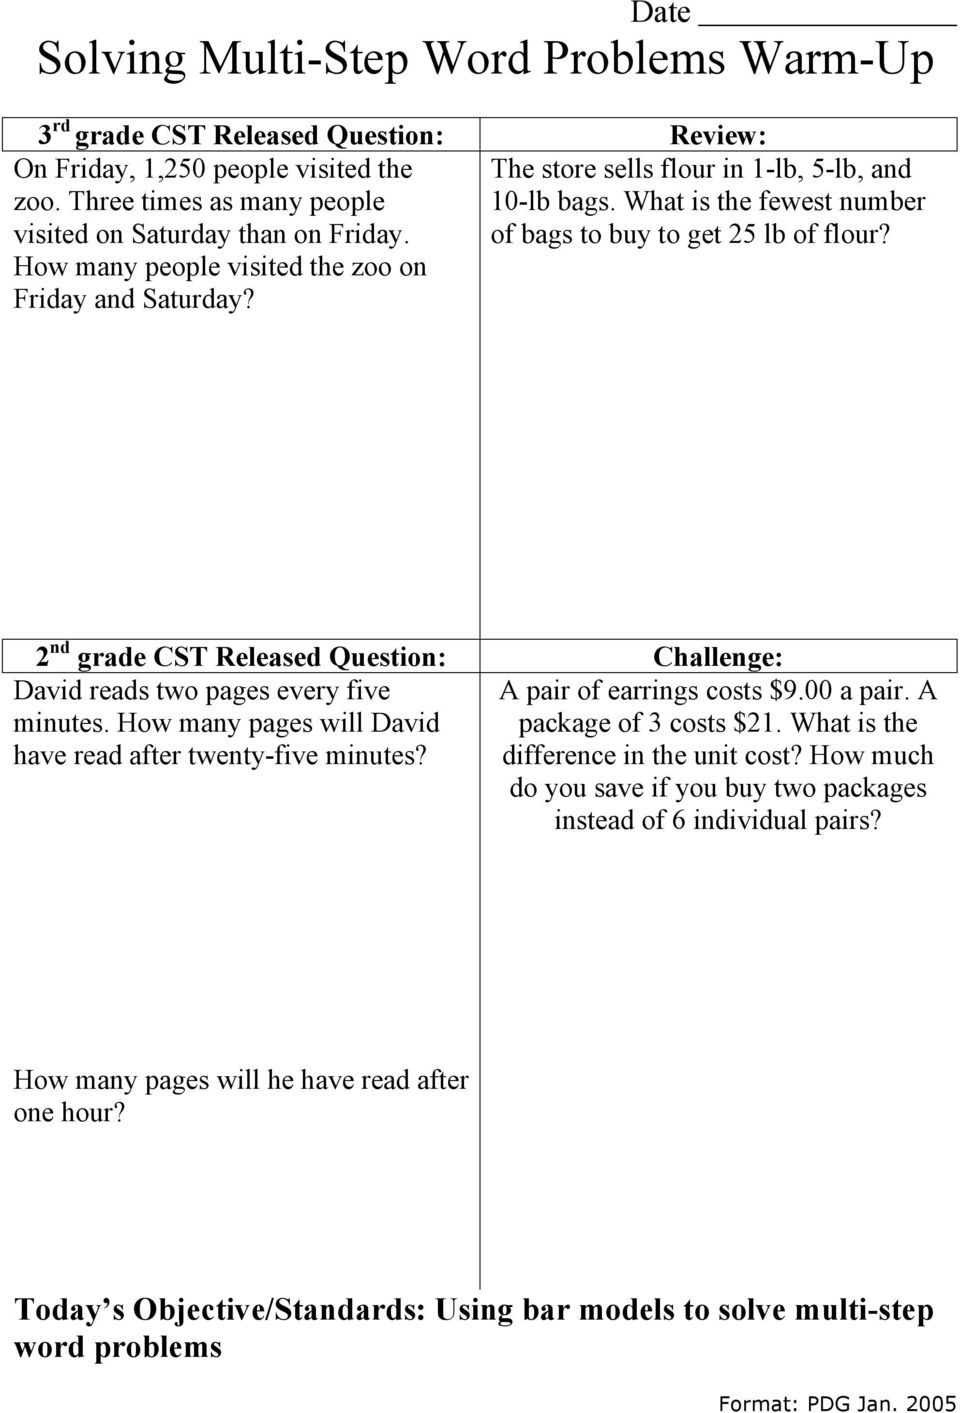 medium resolution of Date Solving Multi-Step Word Problems Warm-Up - PDF Free Download